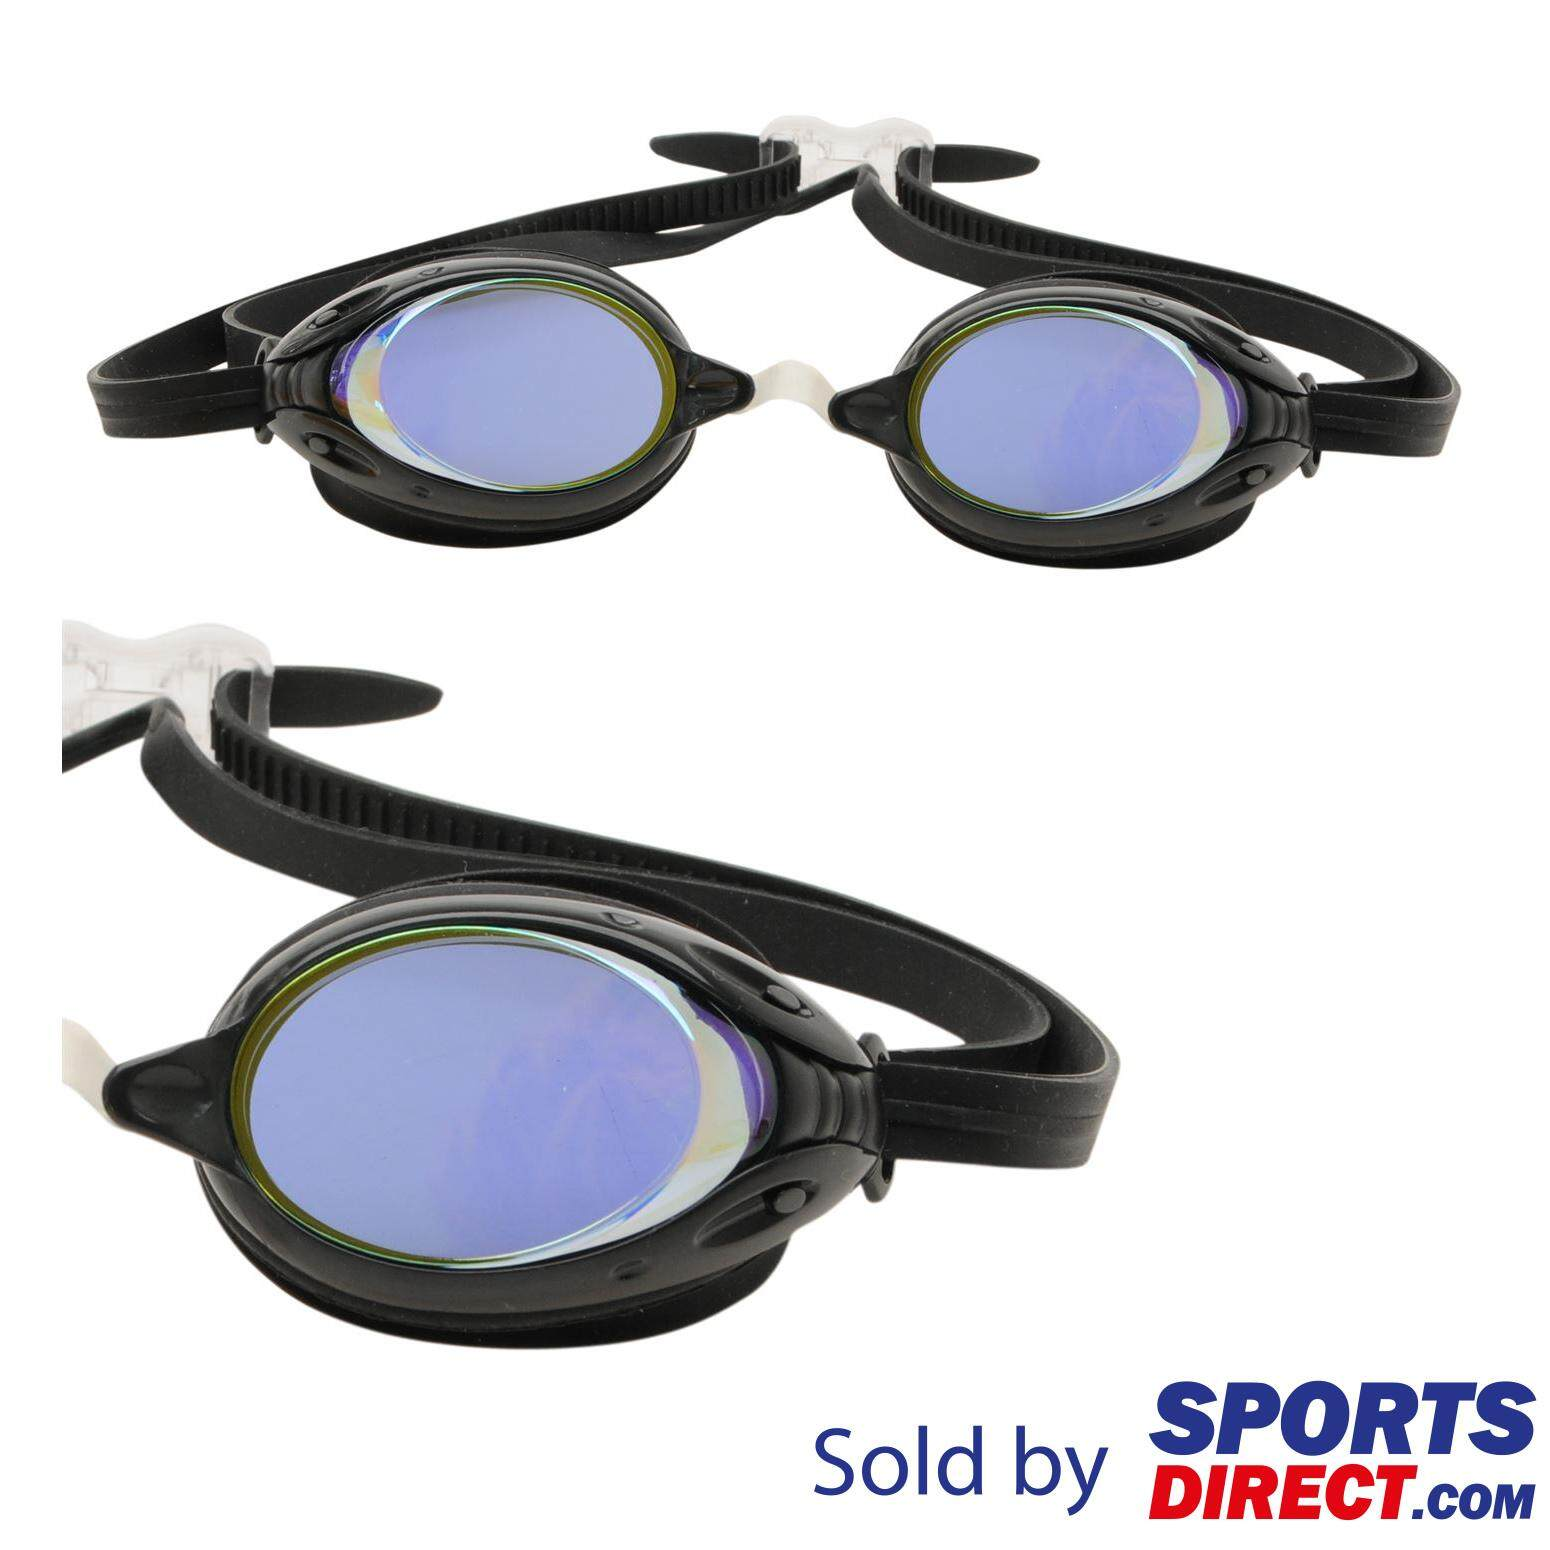 Slazenger Hydro Swimming Goggles Mens By Sports Direct Mst Sdn Bhd.